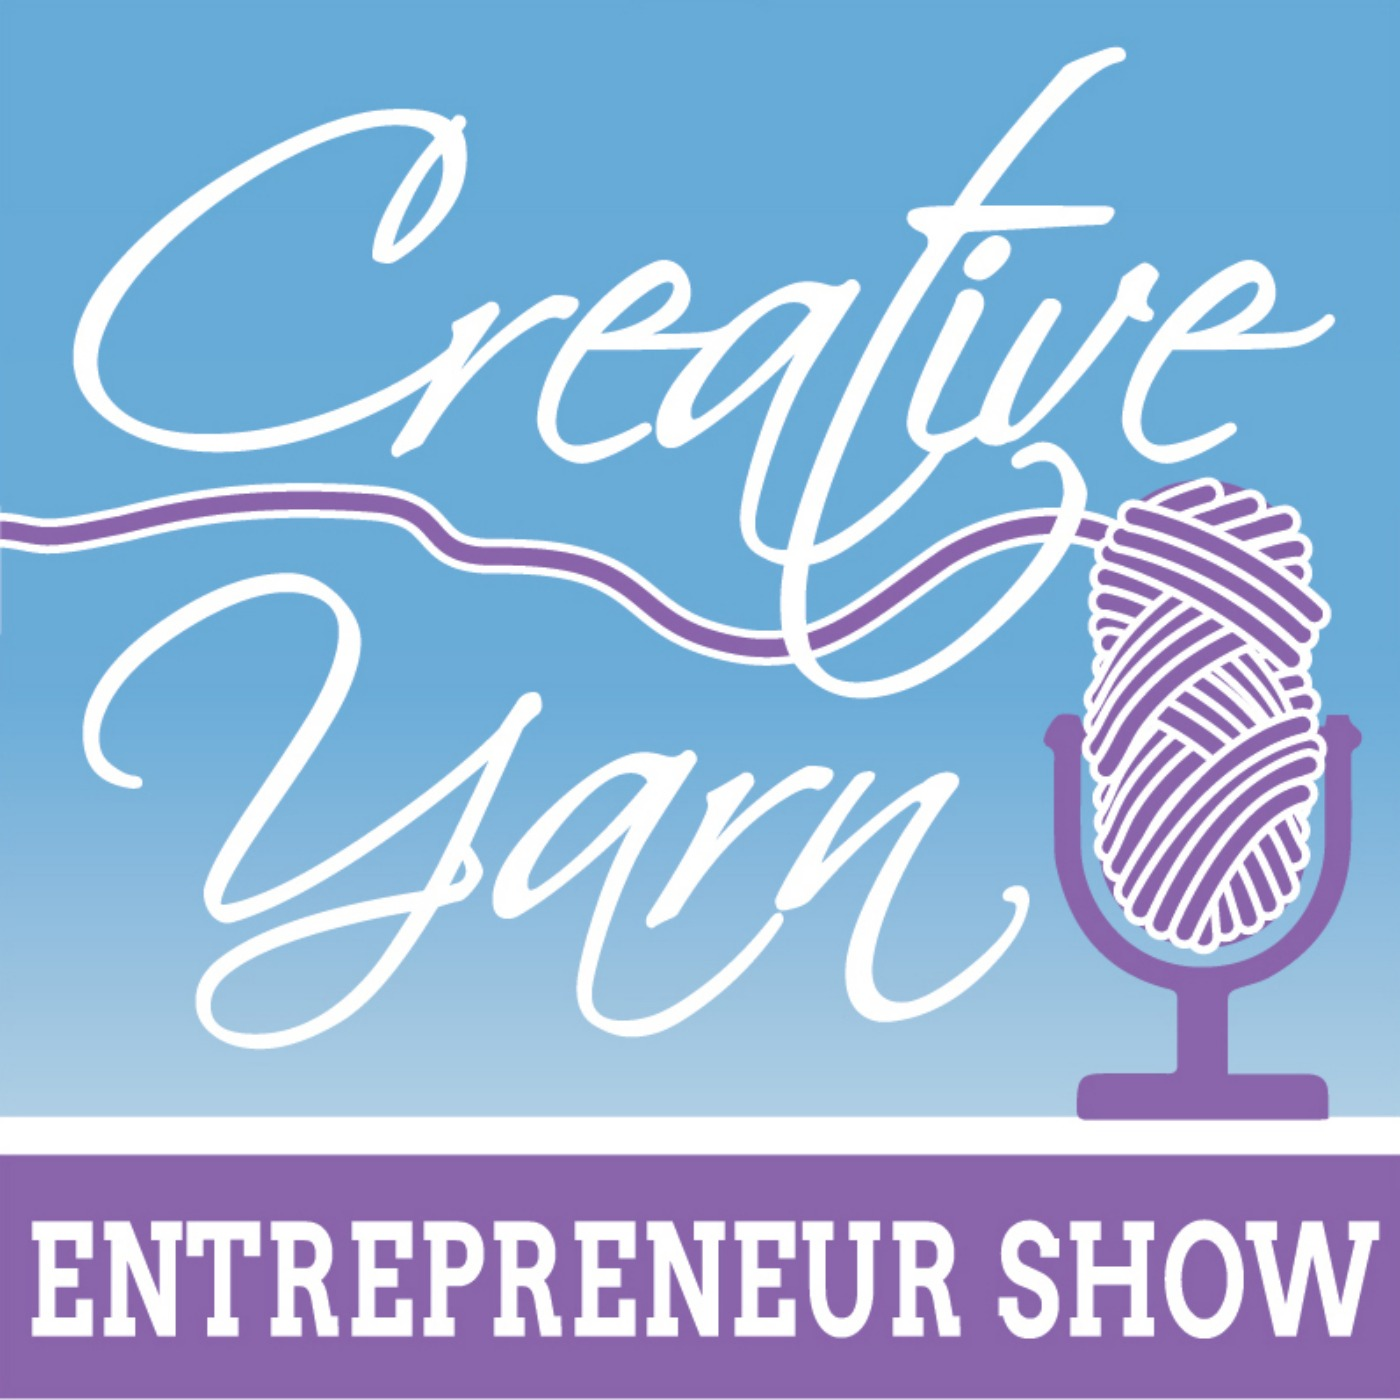 Episode 37: Crochet & Knitting Design & Self-Publishing Mini Series 2: Drafting Your Pattern - The Creative Yarn Entrepreneur Show